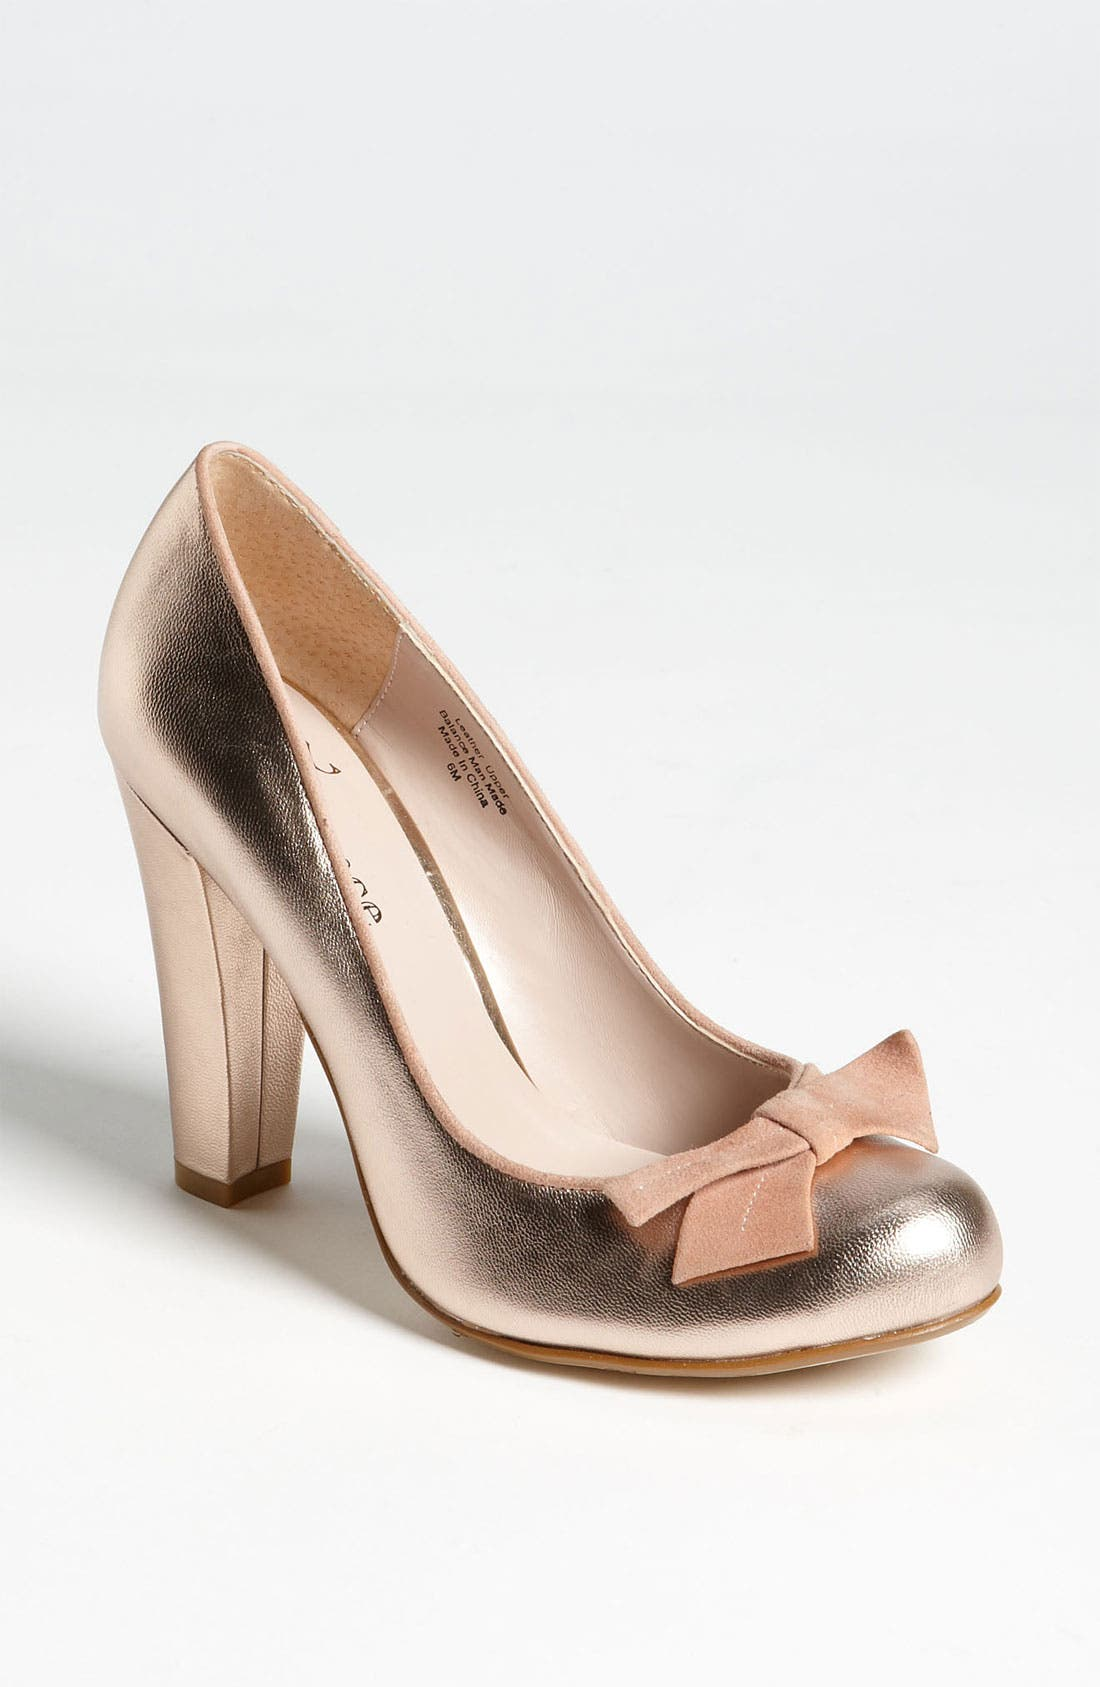 Alternate Image 1 Selected - Flounce 'Precious' Pump